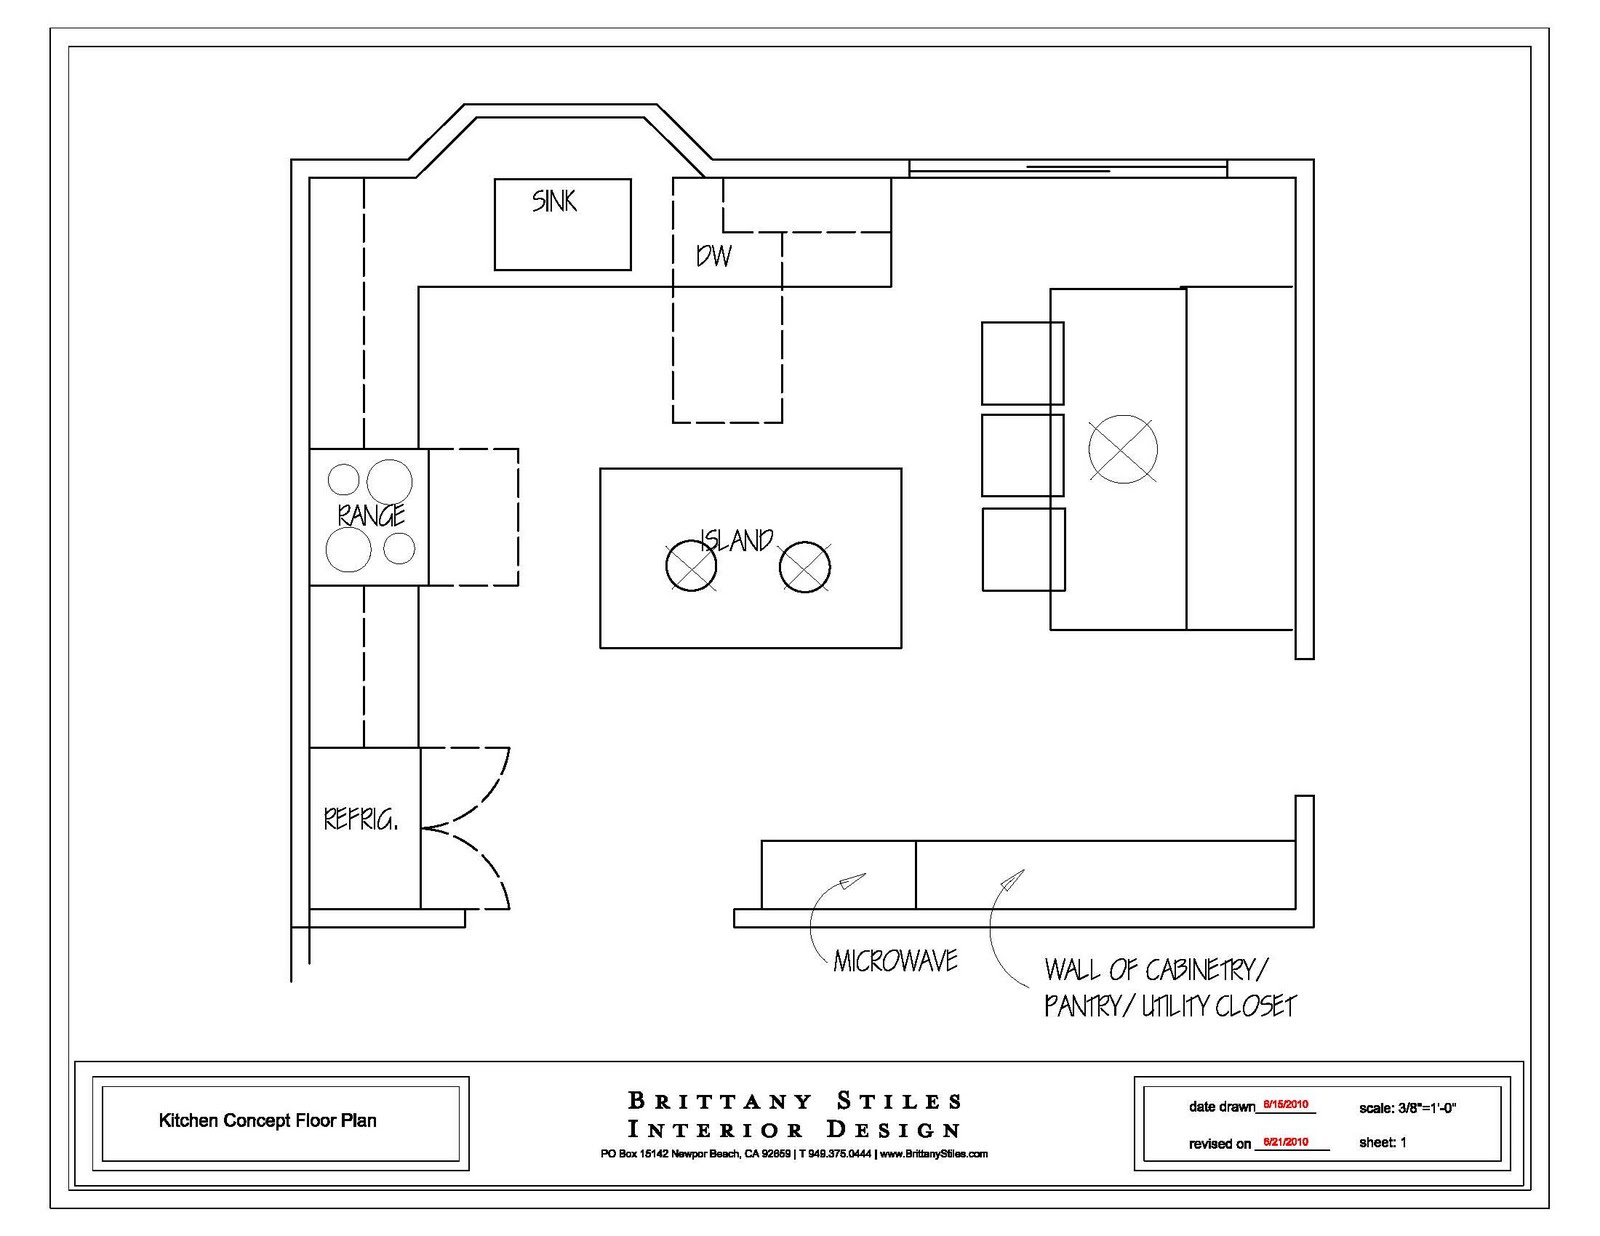 Peninsula kitchen layout decorating ideas for Floor plan layout